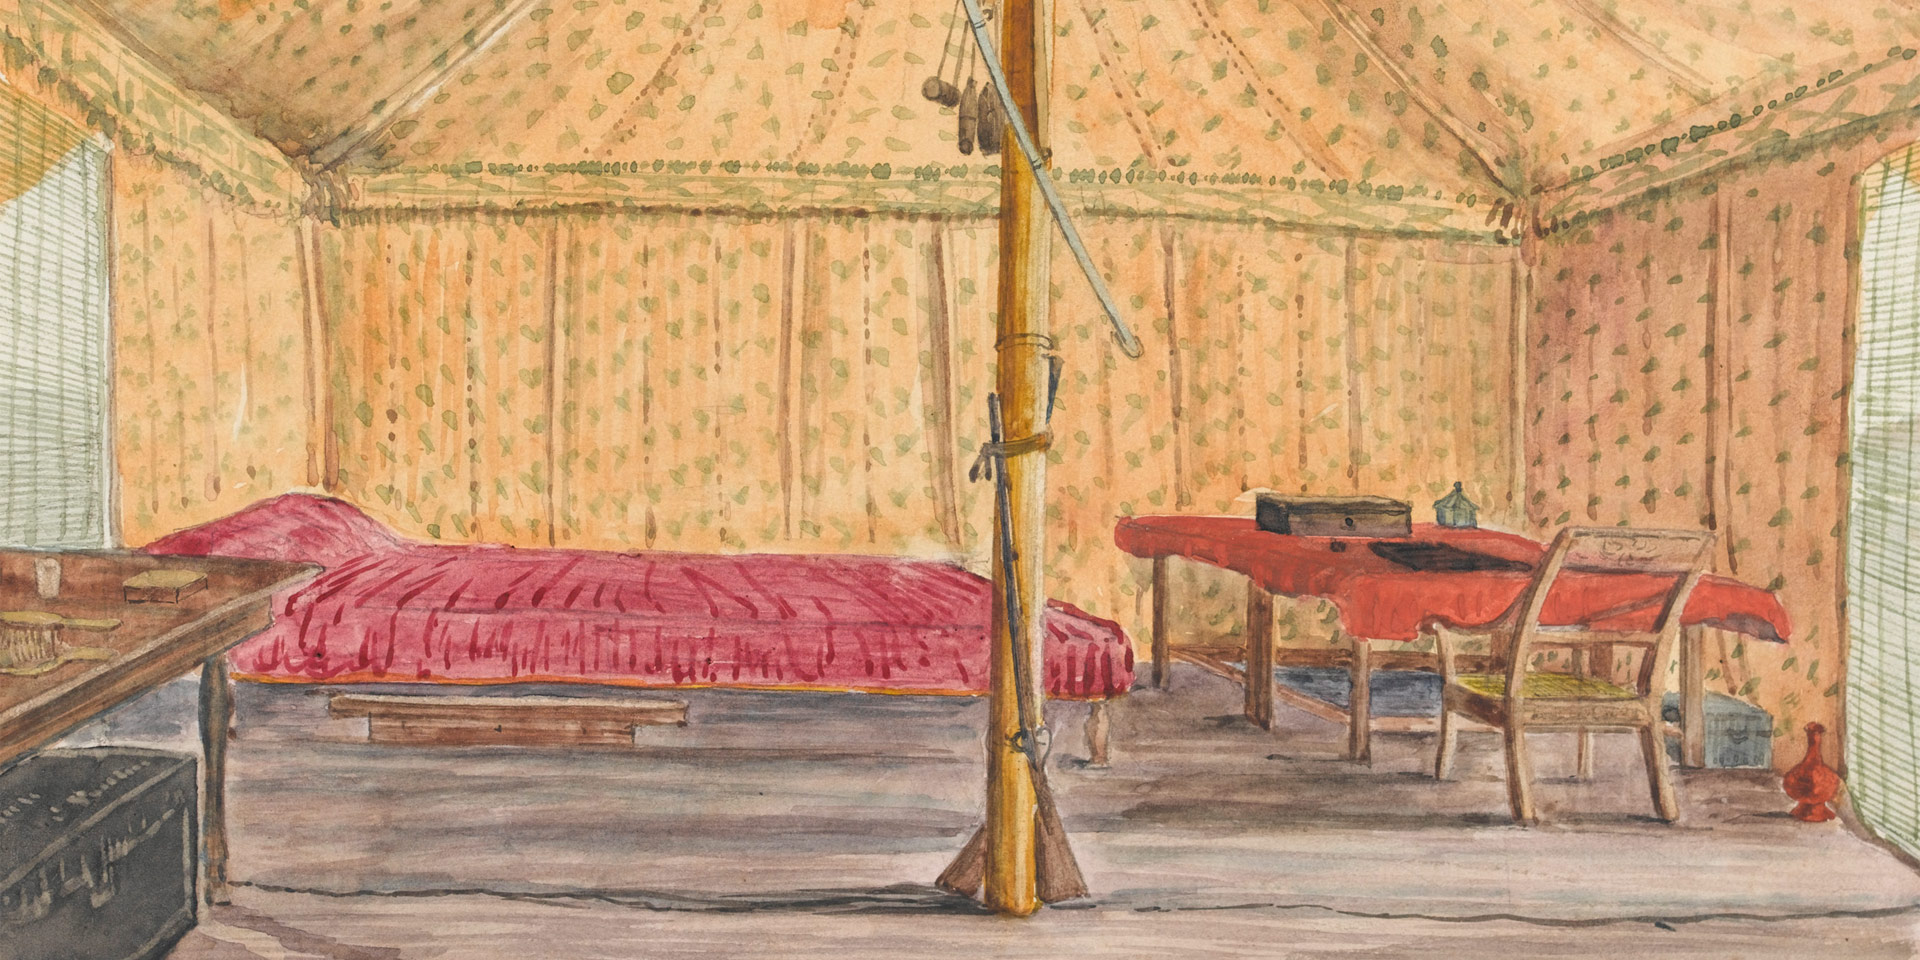 Watercolour: 'Inside a tent, 1858'